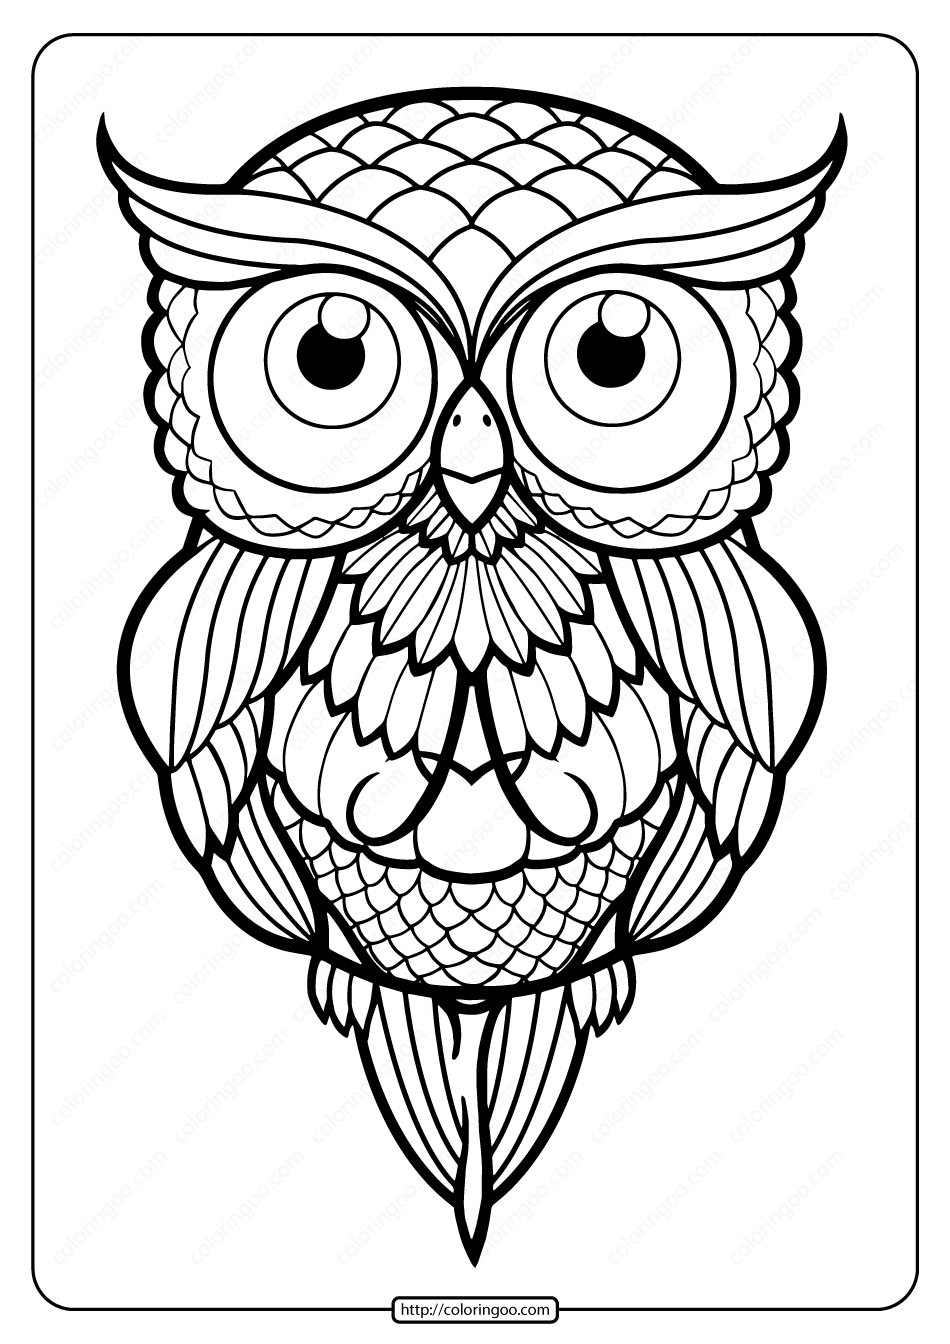 tattoo coloring pages printable butterfly tattoo coloring page free printable coloring pages tattoo pages coloring printable